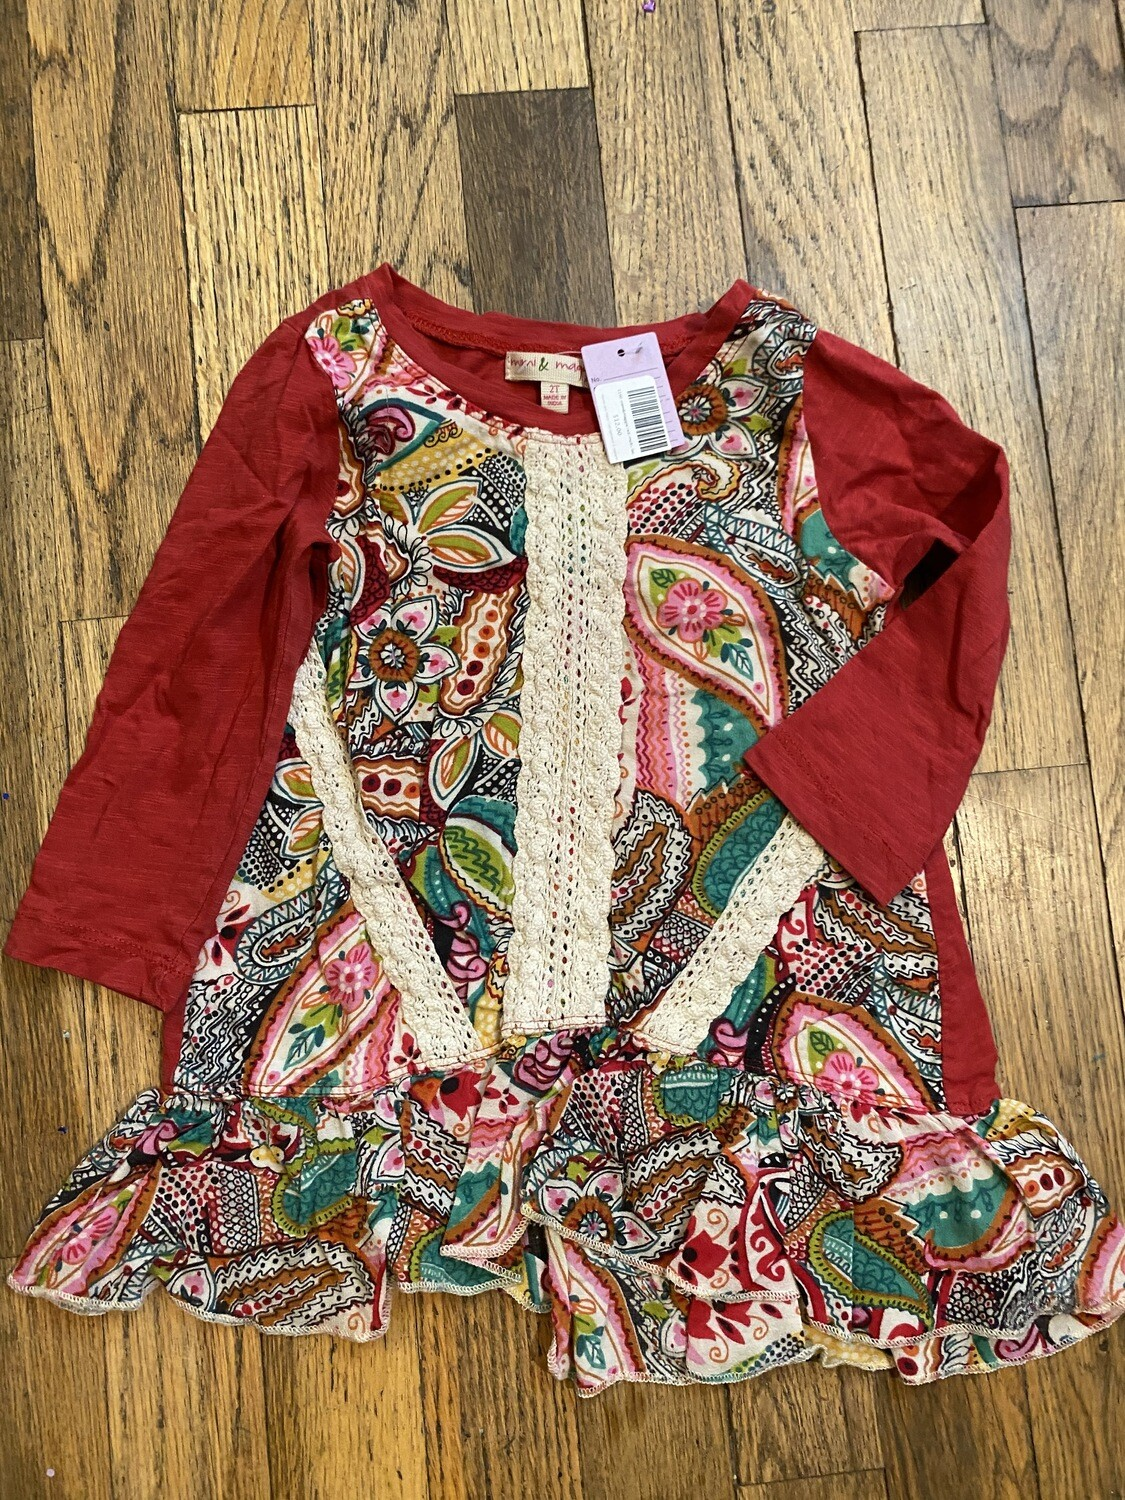 1190 mimi&maggie red/multi/lace long sleeve 2t toddler girl dress 081420